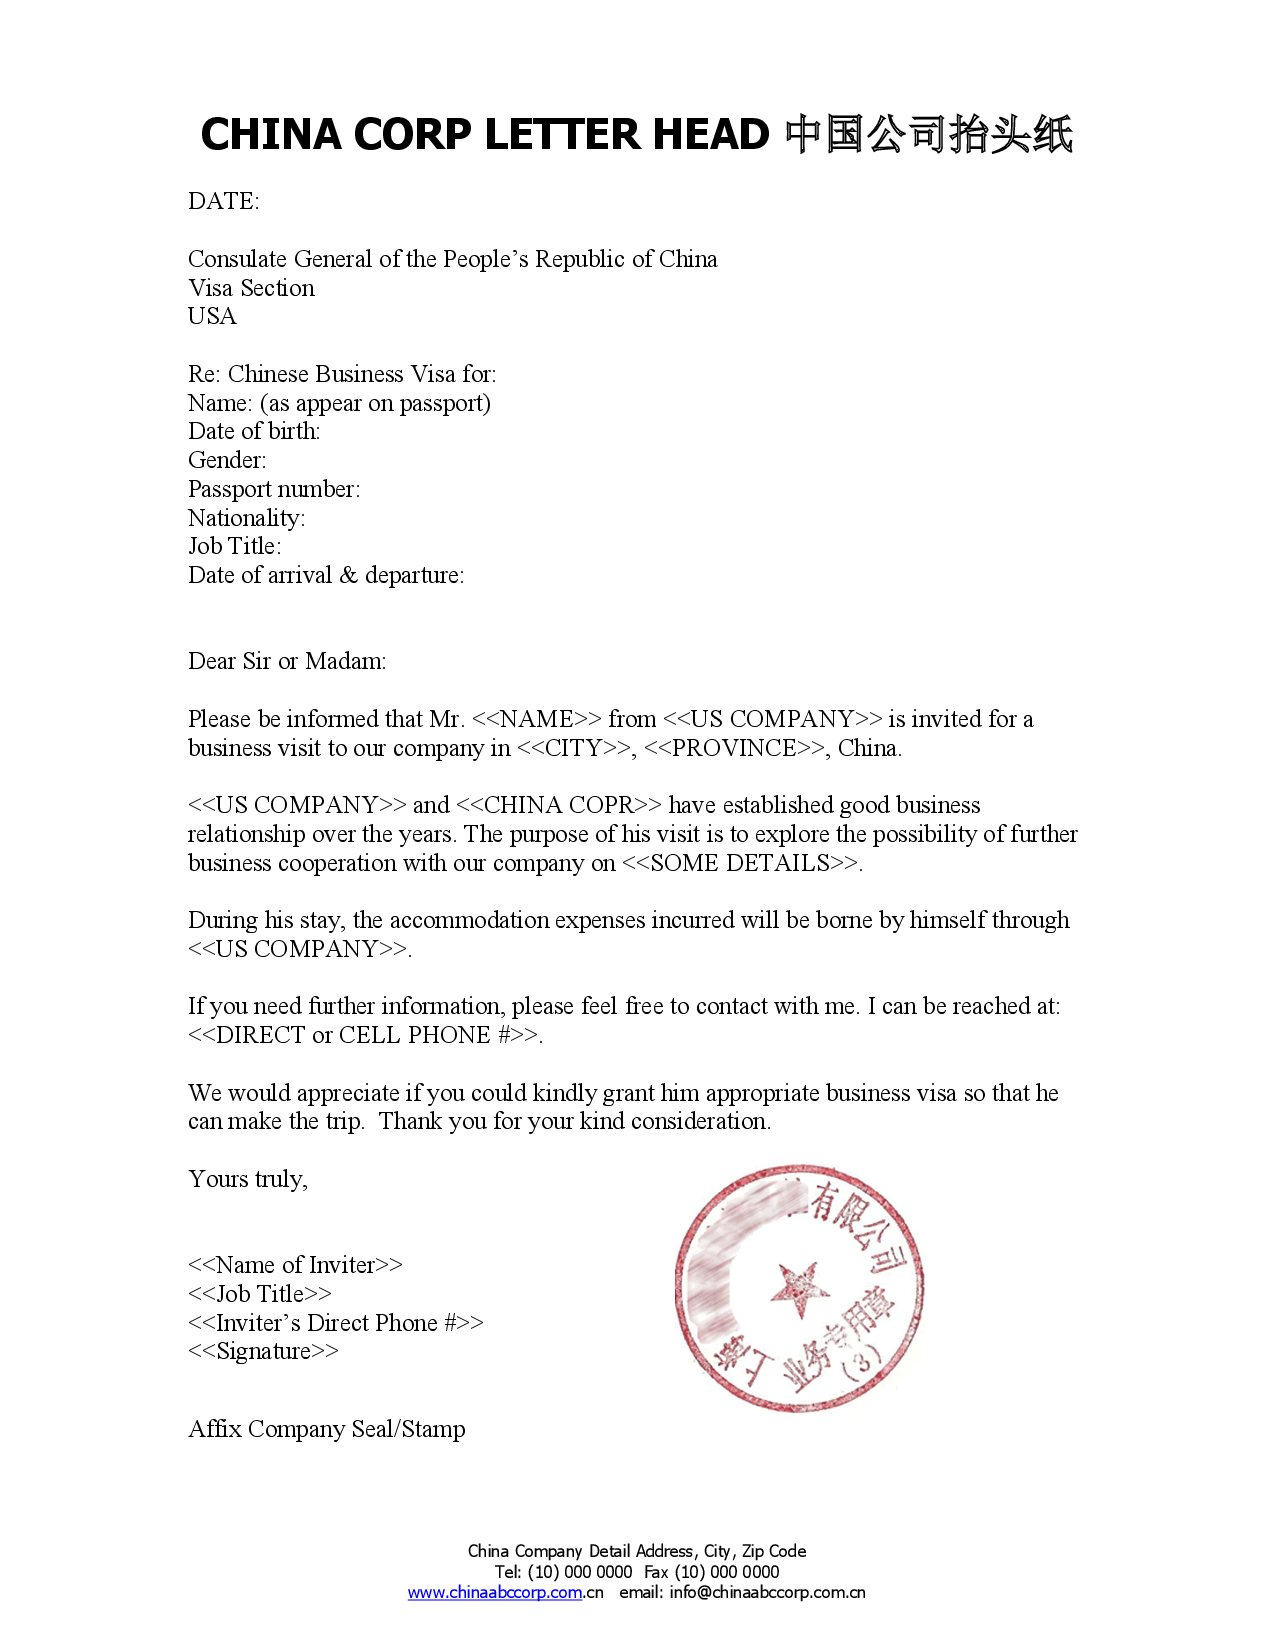 Format invitation letter for business visa to china lettervisa format invitation letter for business visa to china lettervisa invitation letter application letter sample stopboris